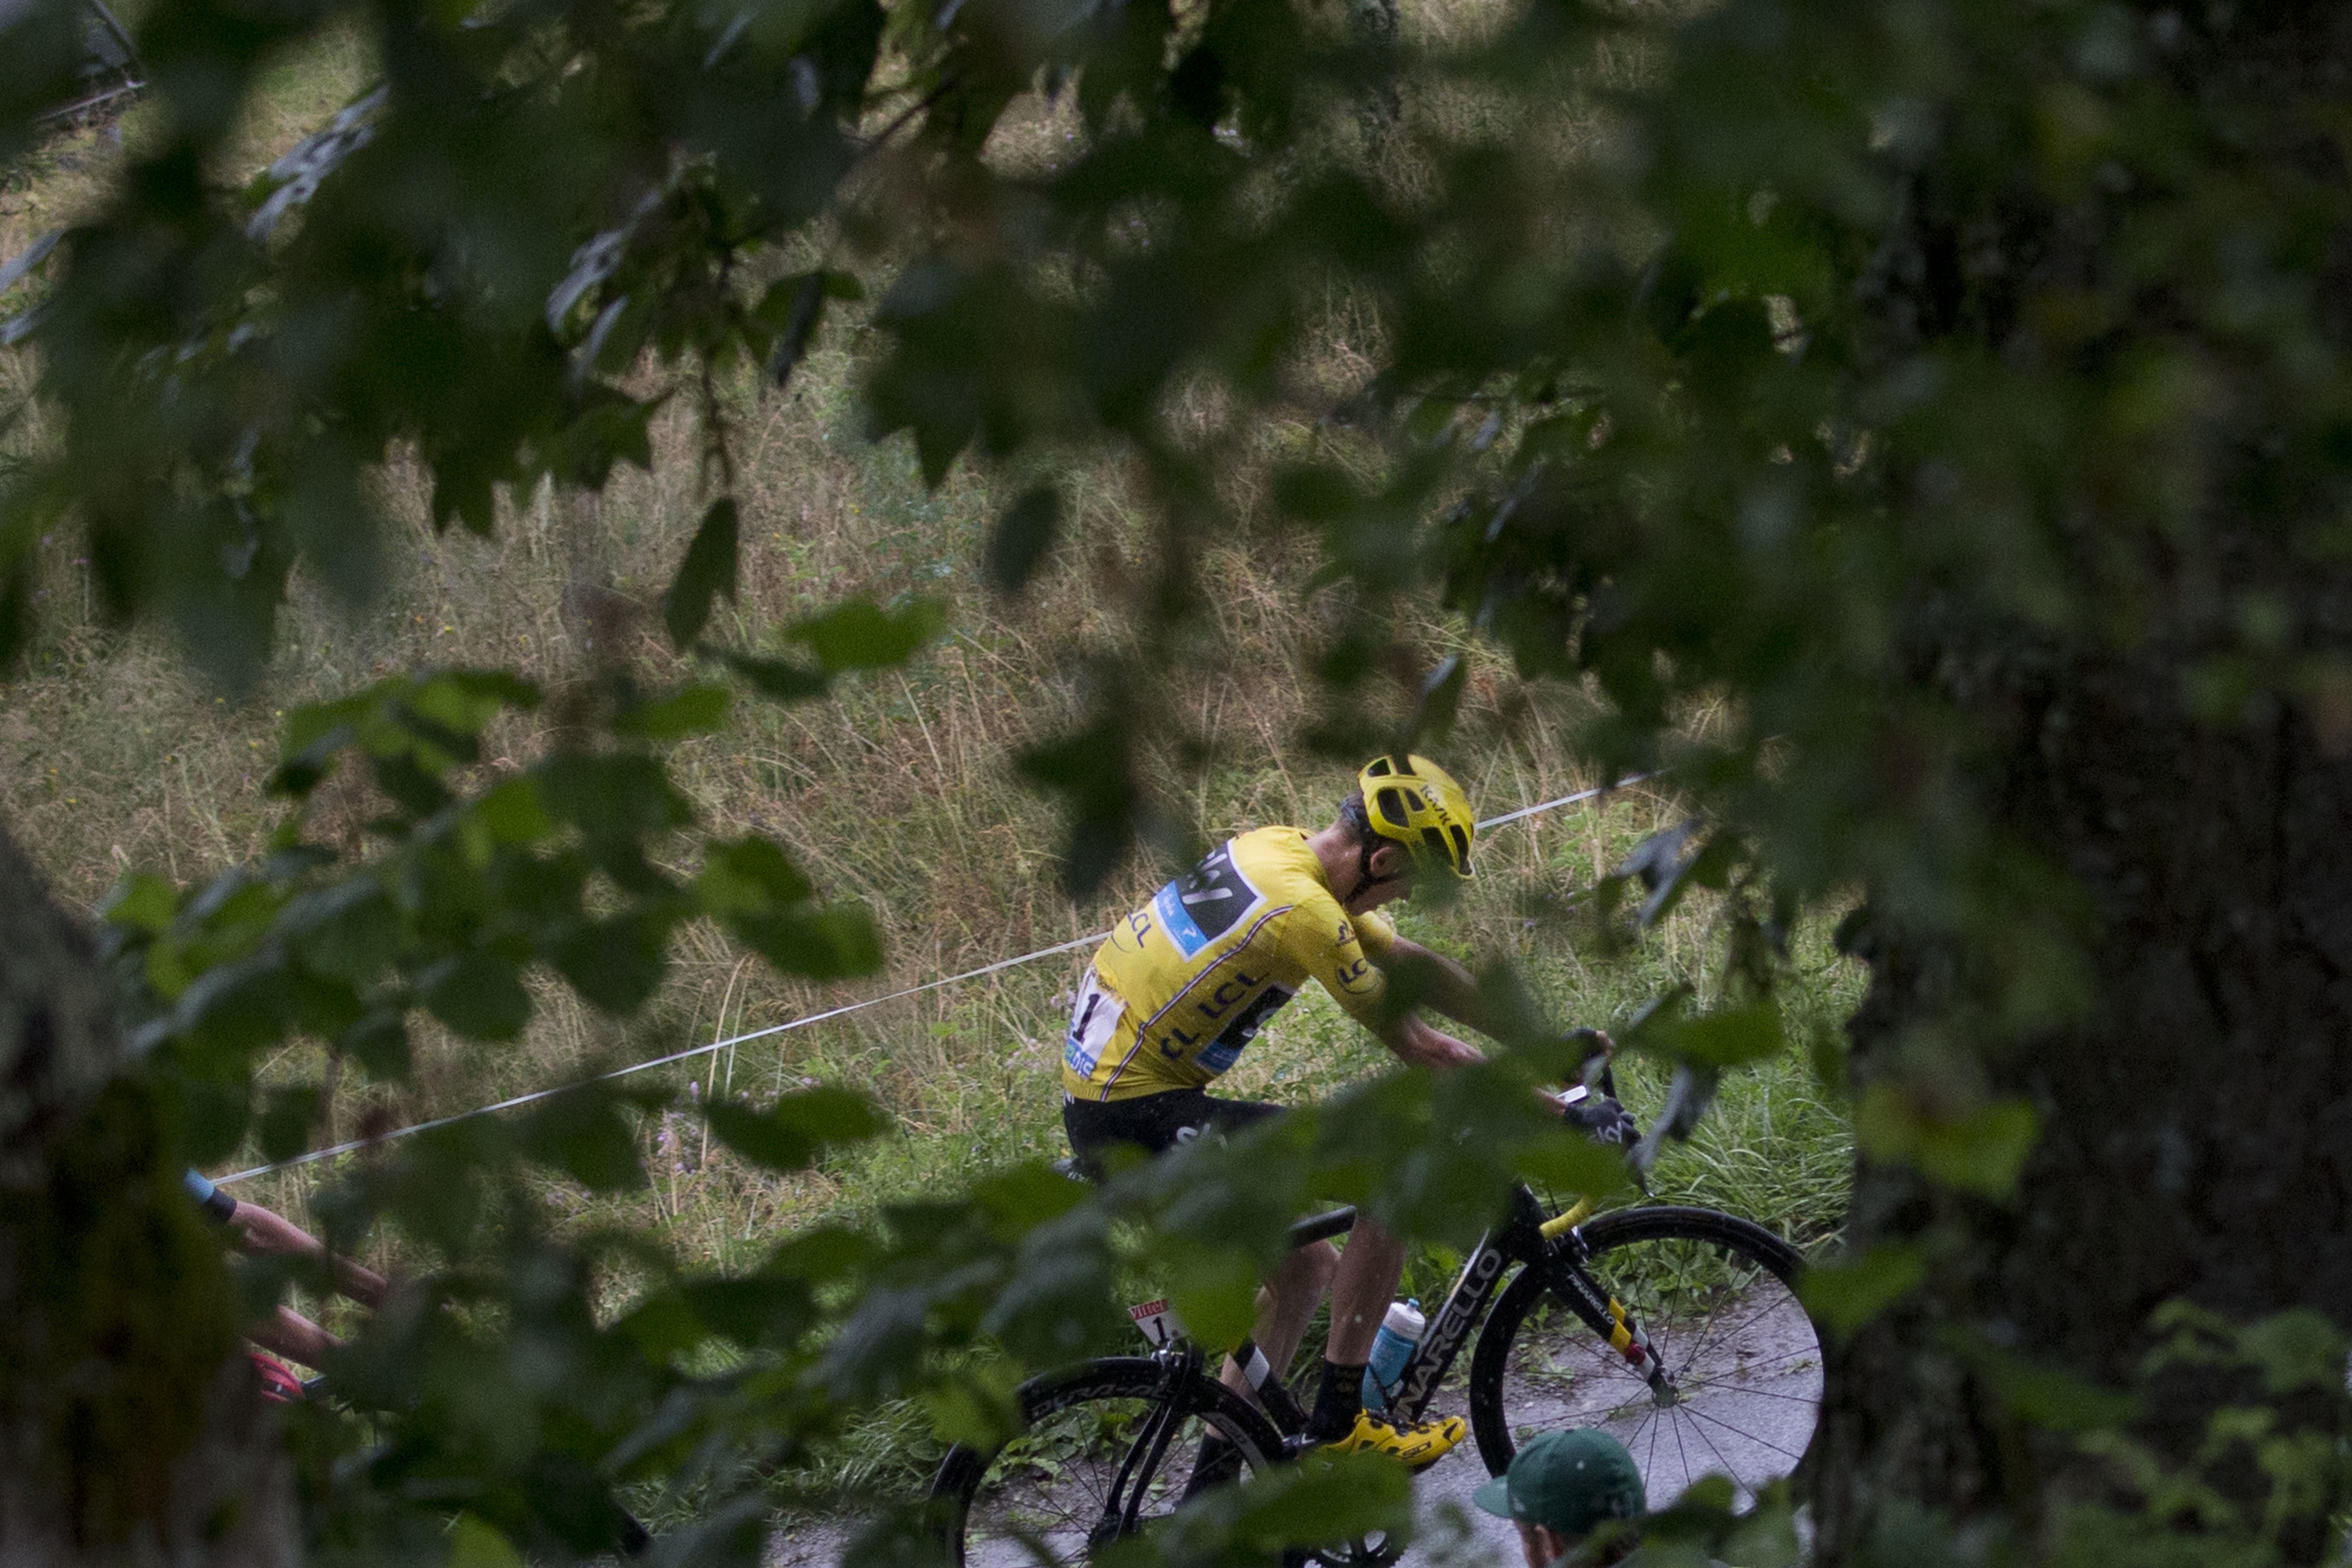 Britain's Chris Froome, wearing the overall leader's yellow jersey, climbs during the twentieth stage of the Tour de France cycling race over 146.5 kilometers (90.7 miles) with start in Megeve and finish in Morzine-Avoriaz, France, Saturday, July 23, 2016